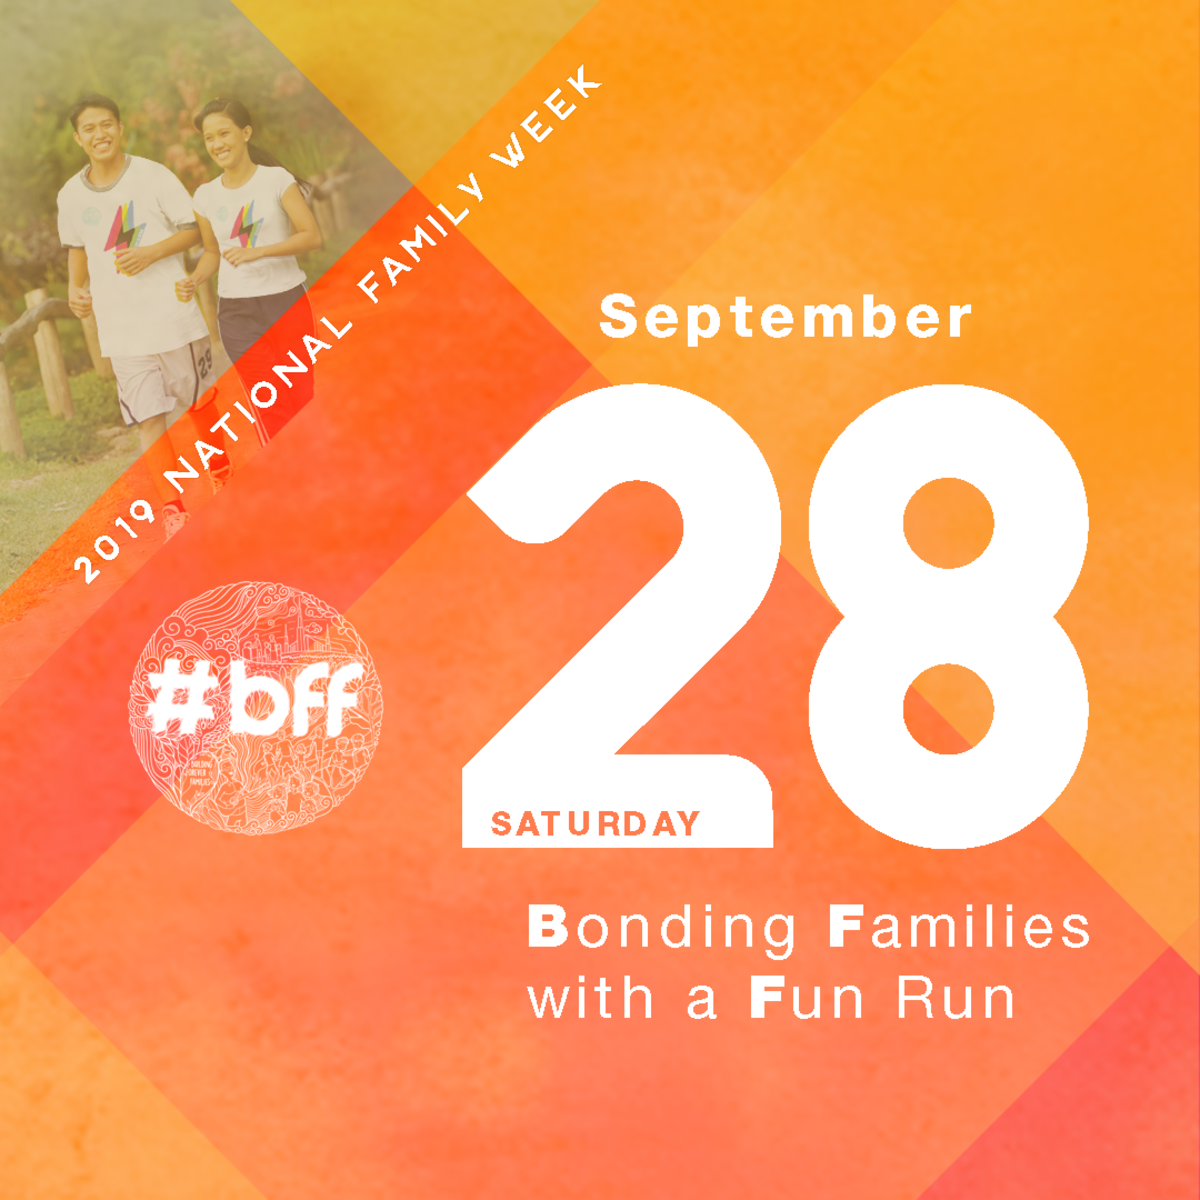 Bonding Families with a Fun Run